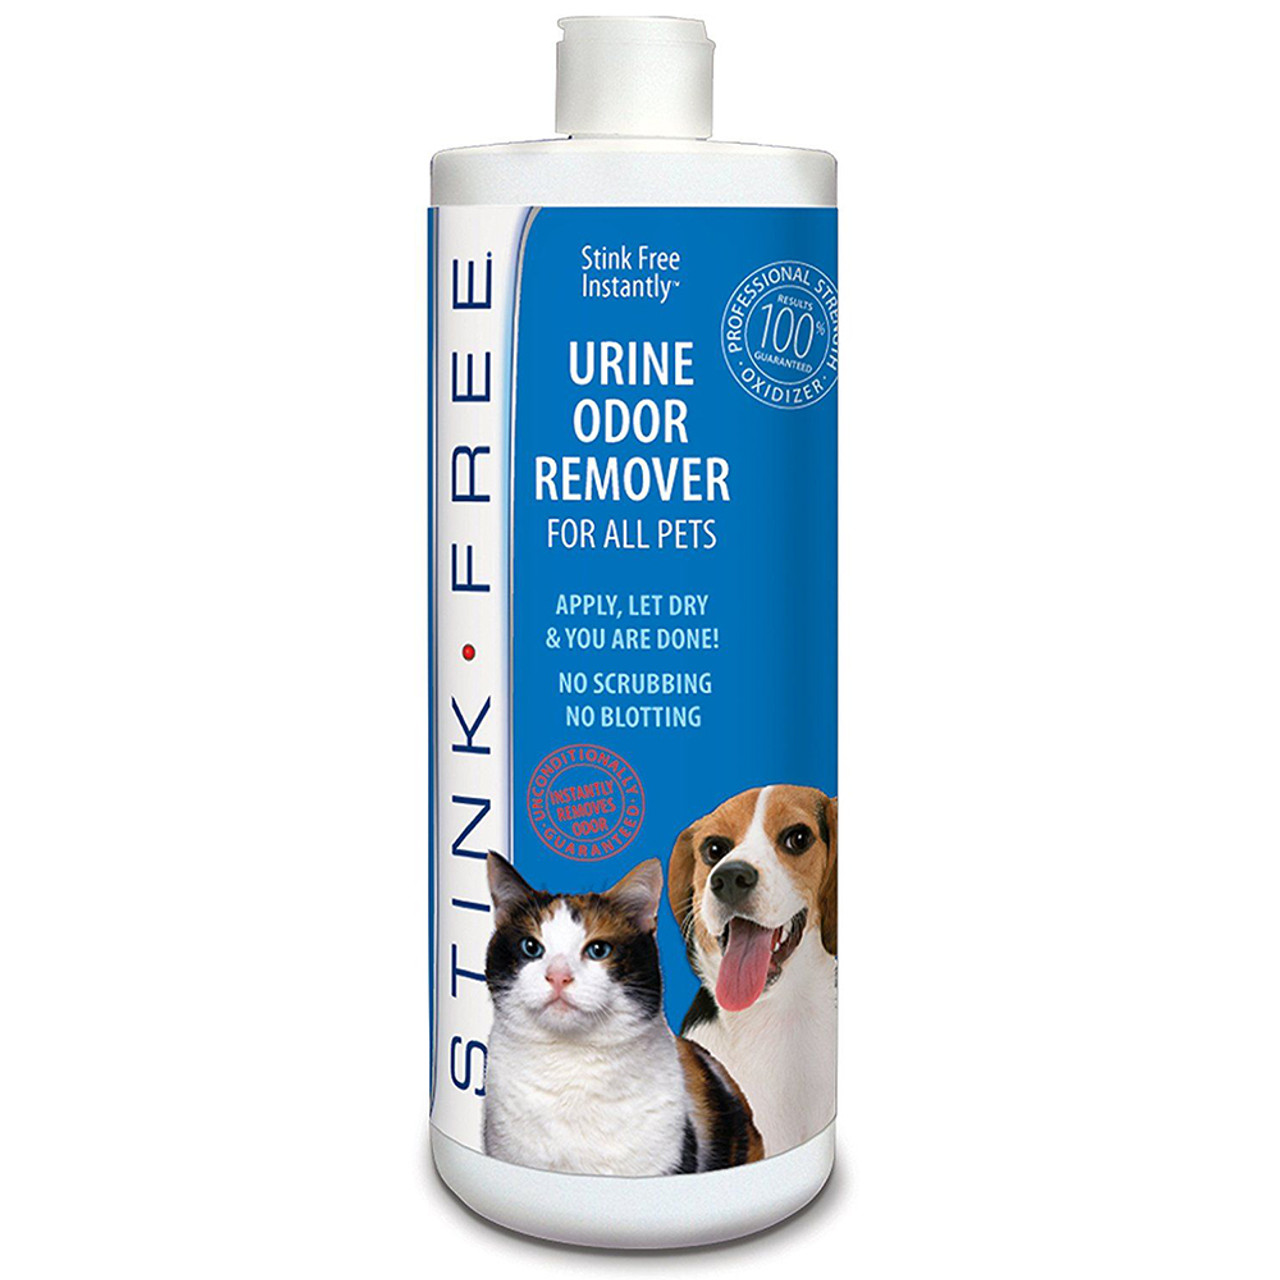 Stink Free Instant Urine Odor Remover For Cats and Dogs